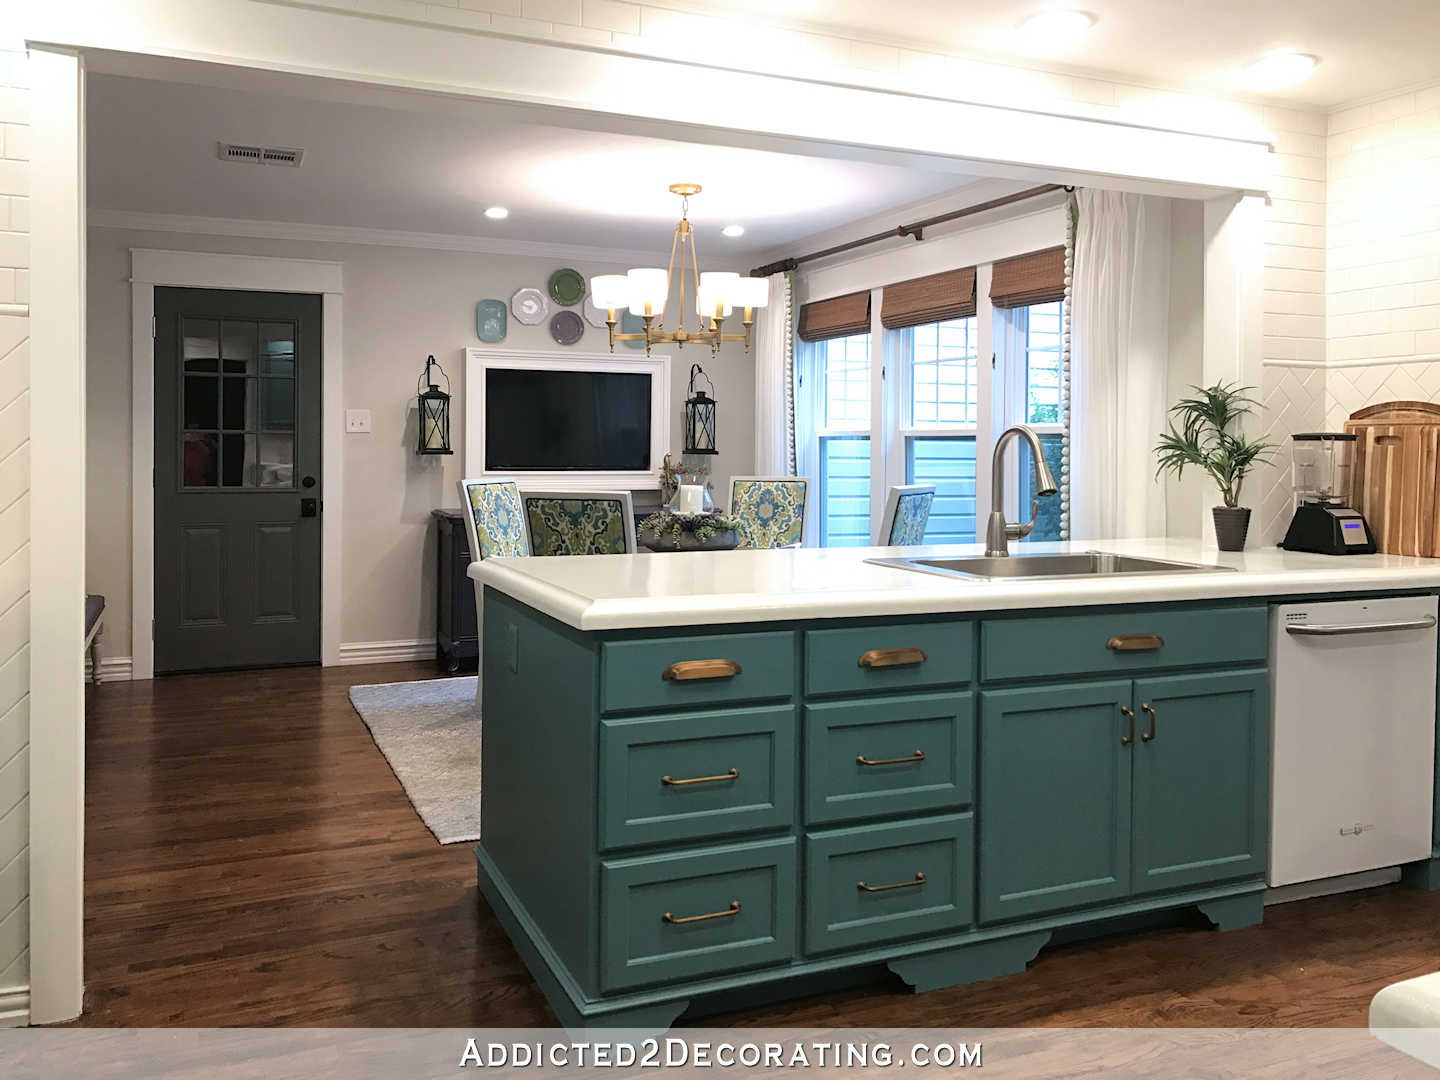 My Finished For Now Kitchen From Kelly Green To Teal Before After Addicted 2 Decorating Teal Kitchen Cabinets Teal Kitchen Kitchen Diy Makeover